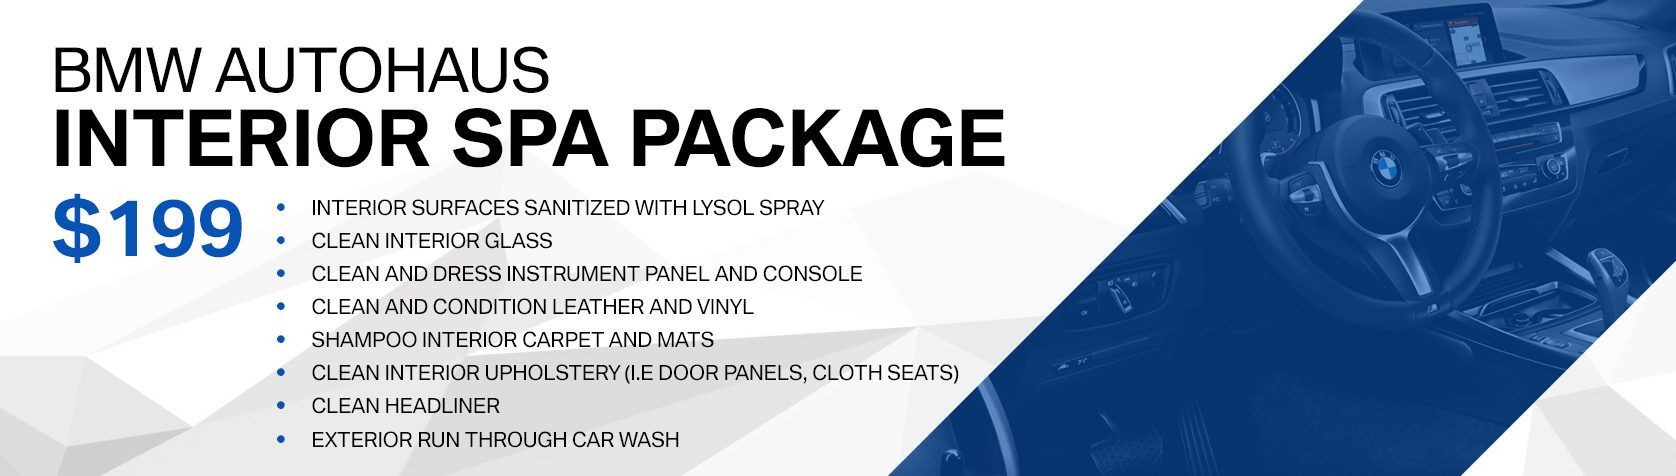 bmw_autohaus_ontario_homepage_spa_package